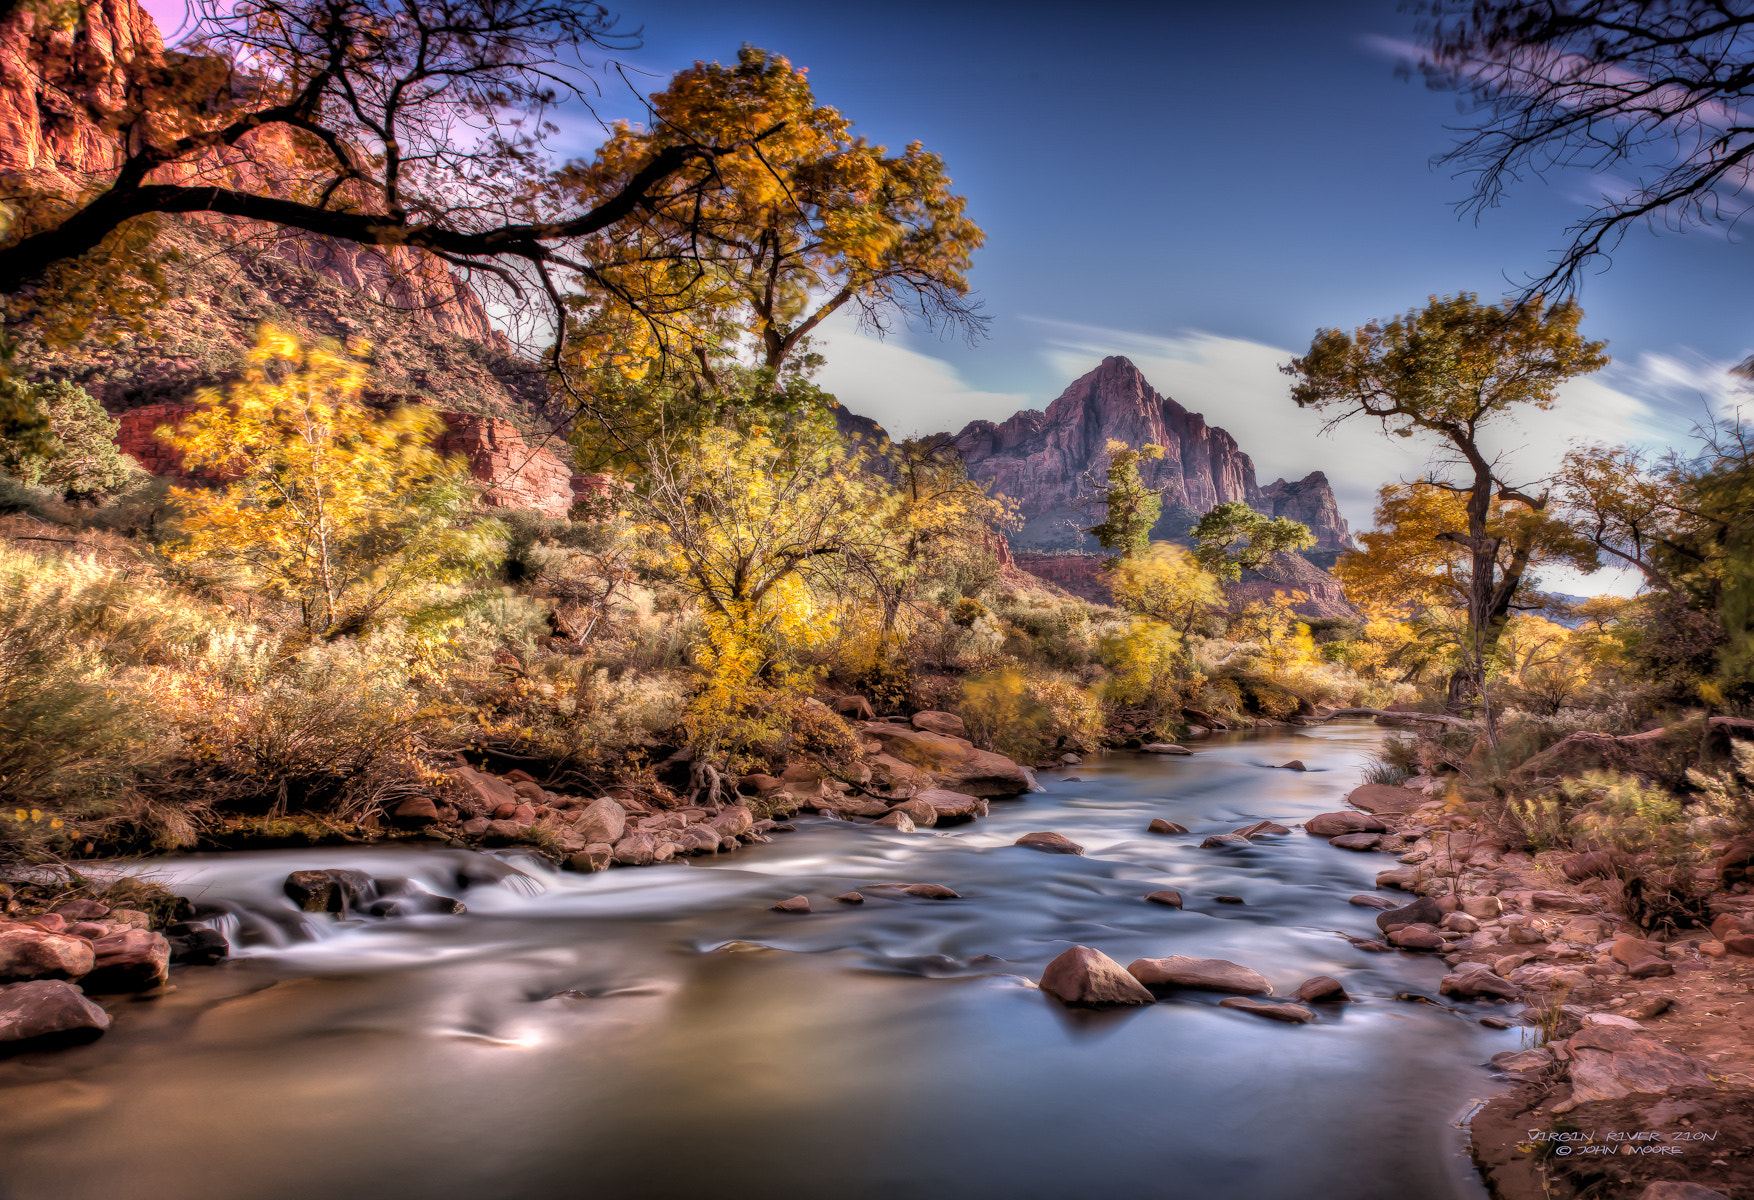 Photograph Virgin River Zion by John Moore on 500px